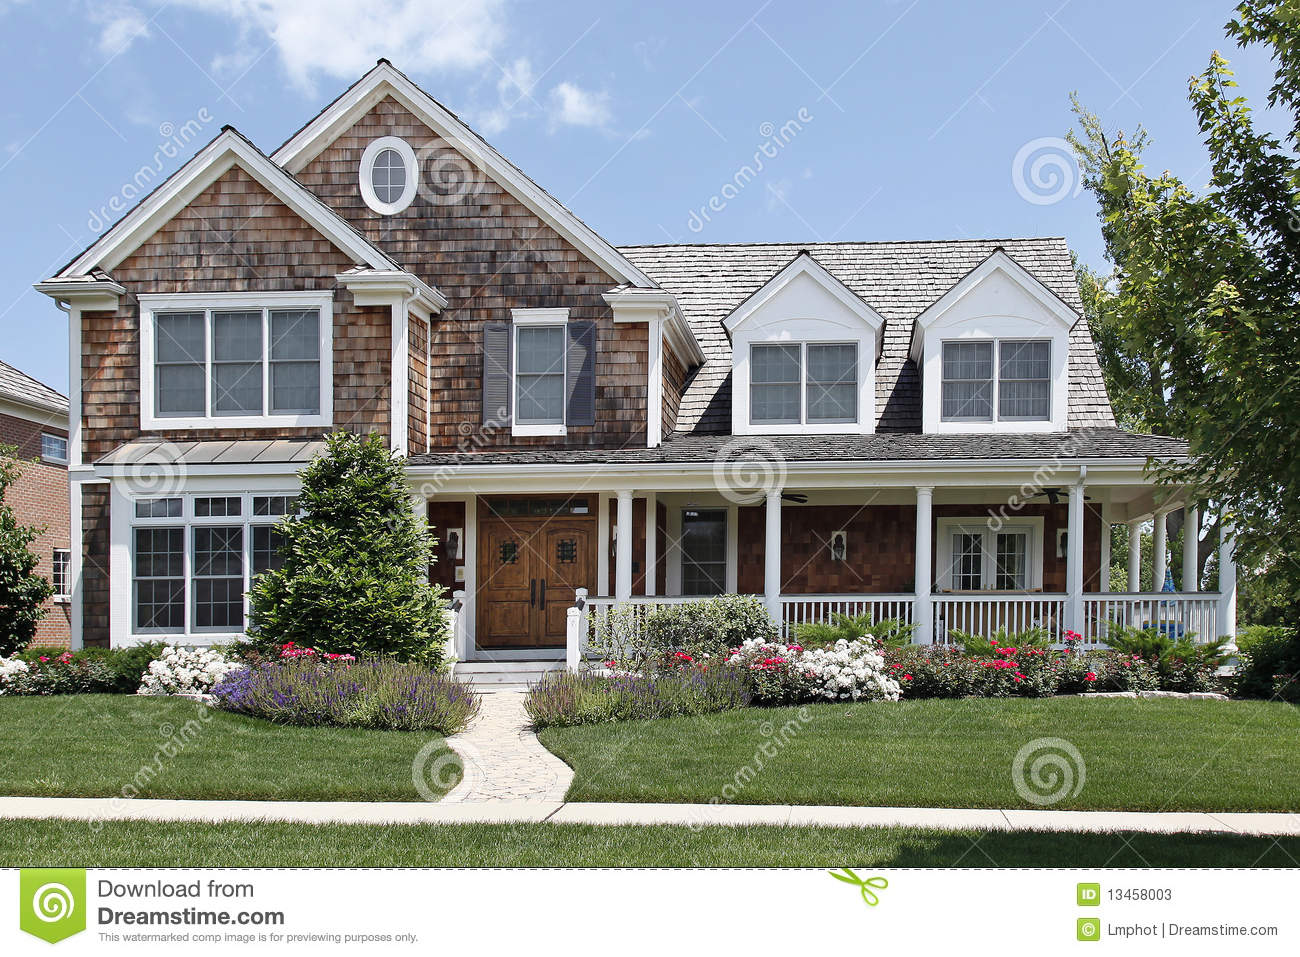 Suburban home with front porch stock image image 13458003 for Porch homes